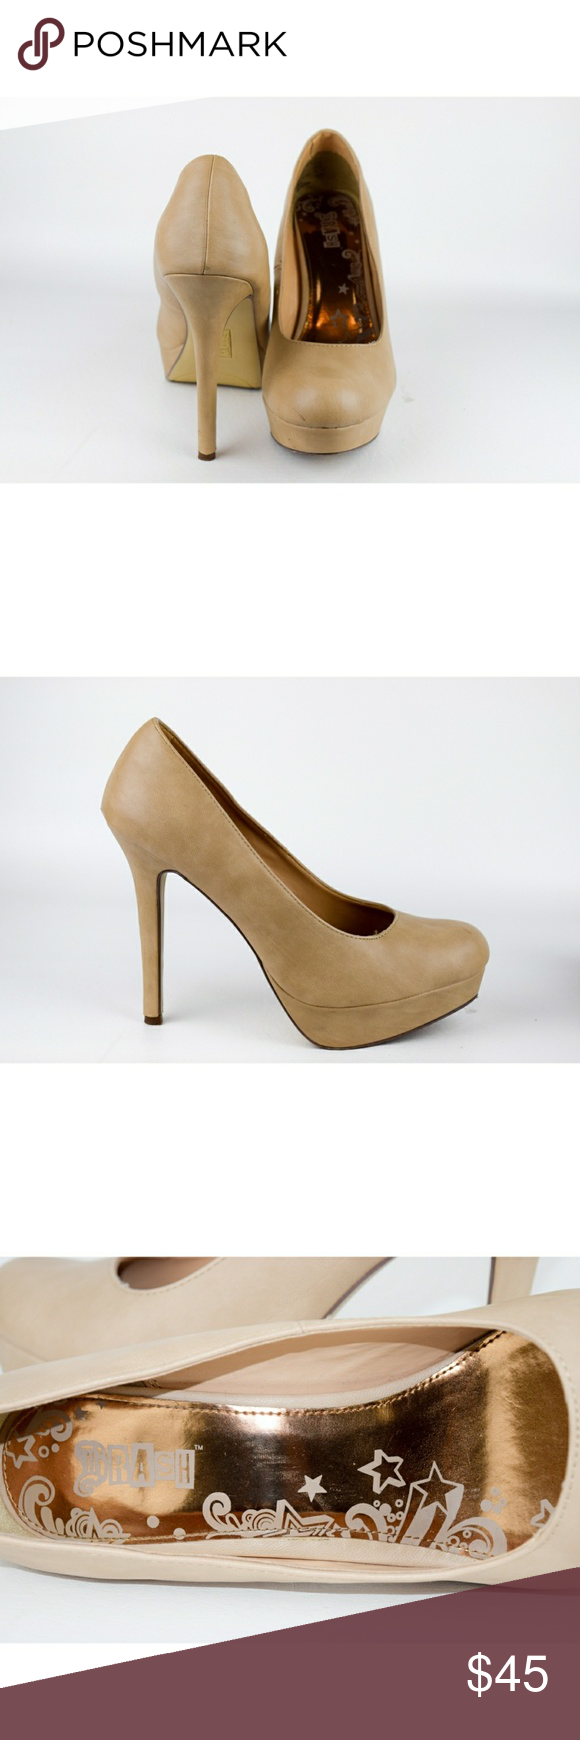 Brash Pumps Size 12 Tan Stiletto Heel Pump Some Wear On Soles And Heels But Otherwise In Great Condition Make An O Pumps Heels Stilettos Stiletto Heels Pumps